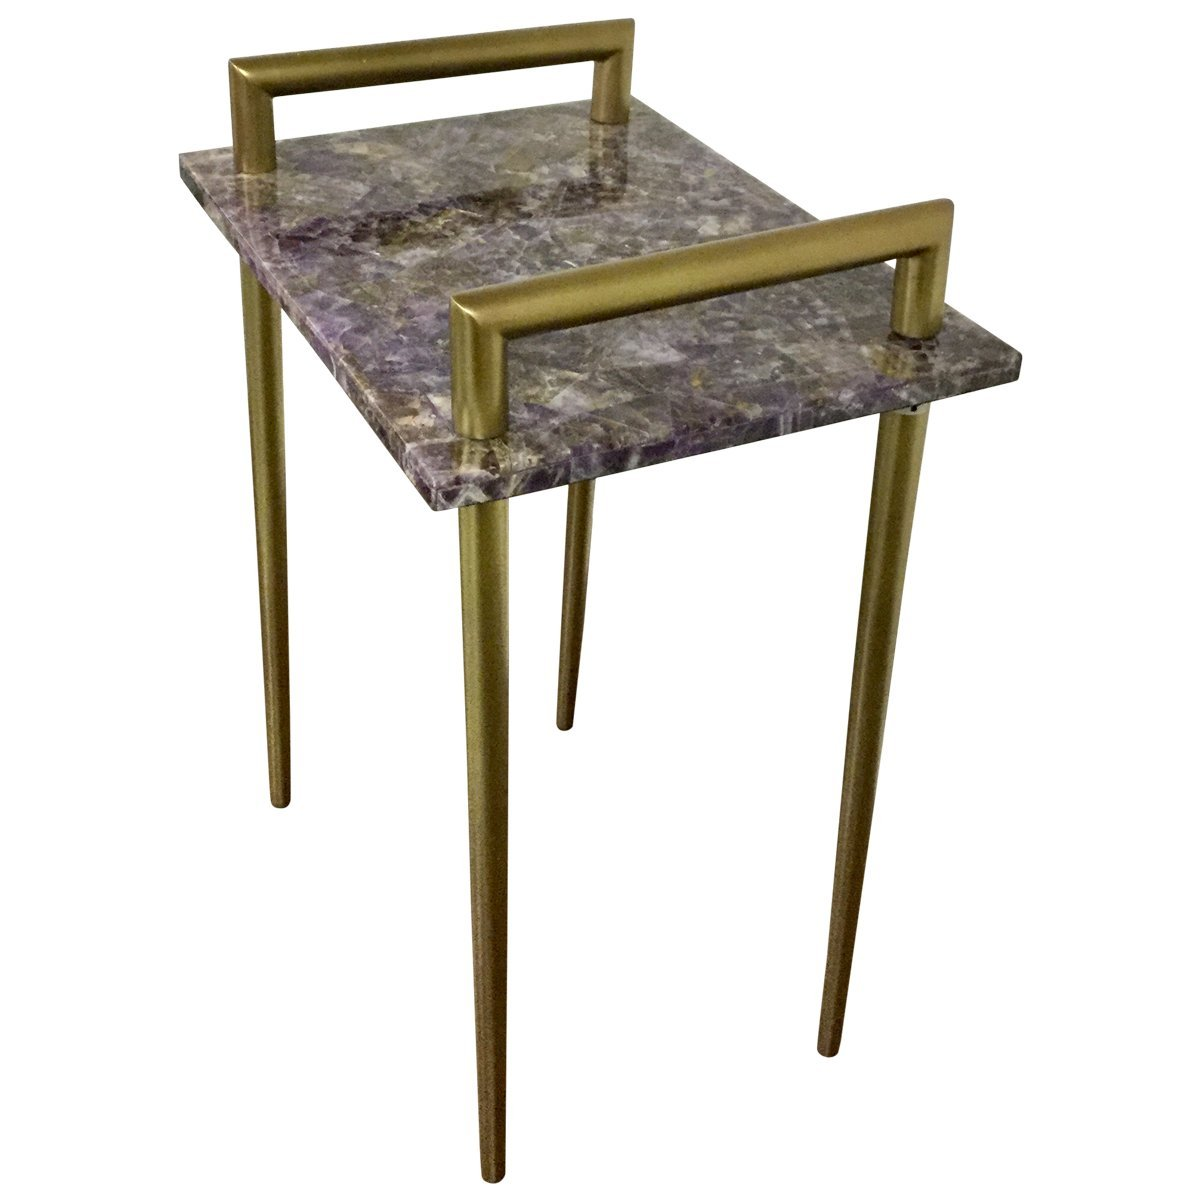 designe gallerie amethyst stone accent side table for gold with drawer living room metal handles bar contemporary brass finish kitchen dining old bath and beyond stools numbers